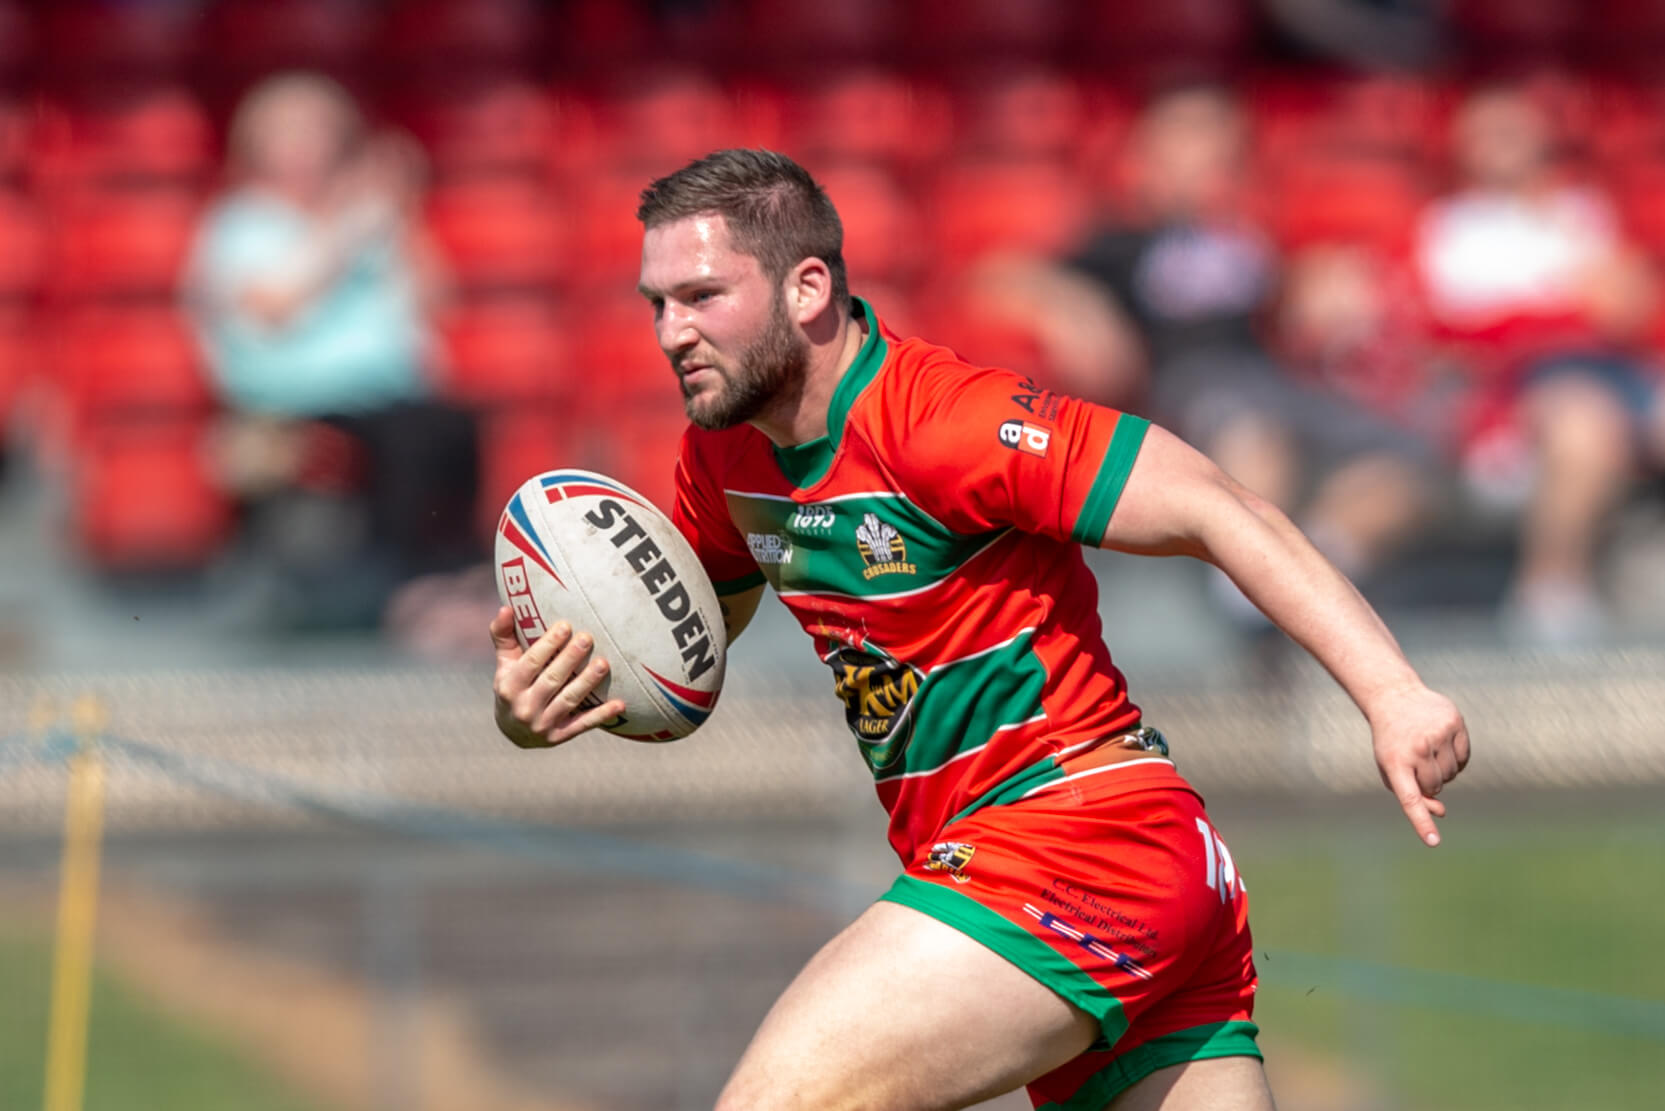 Preview: West Wales Raiders v North Wales Crusaders